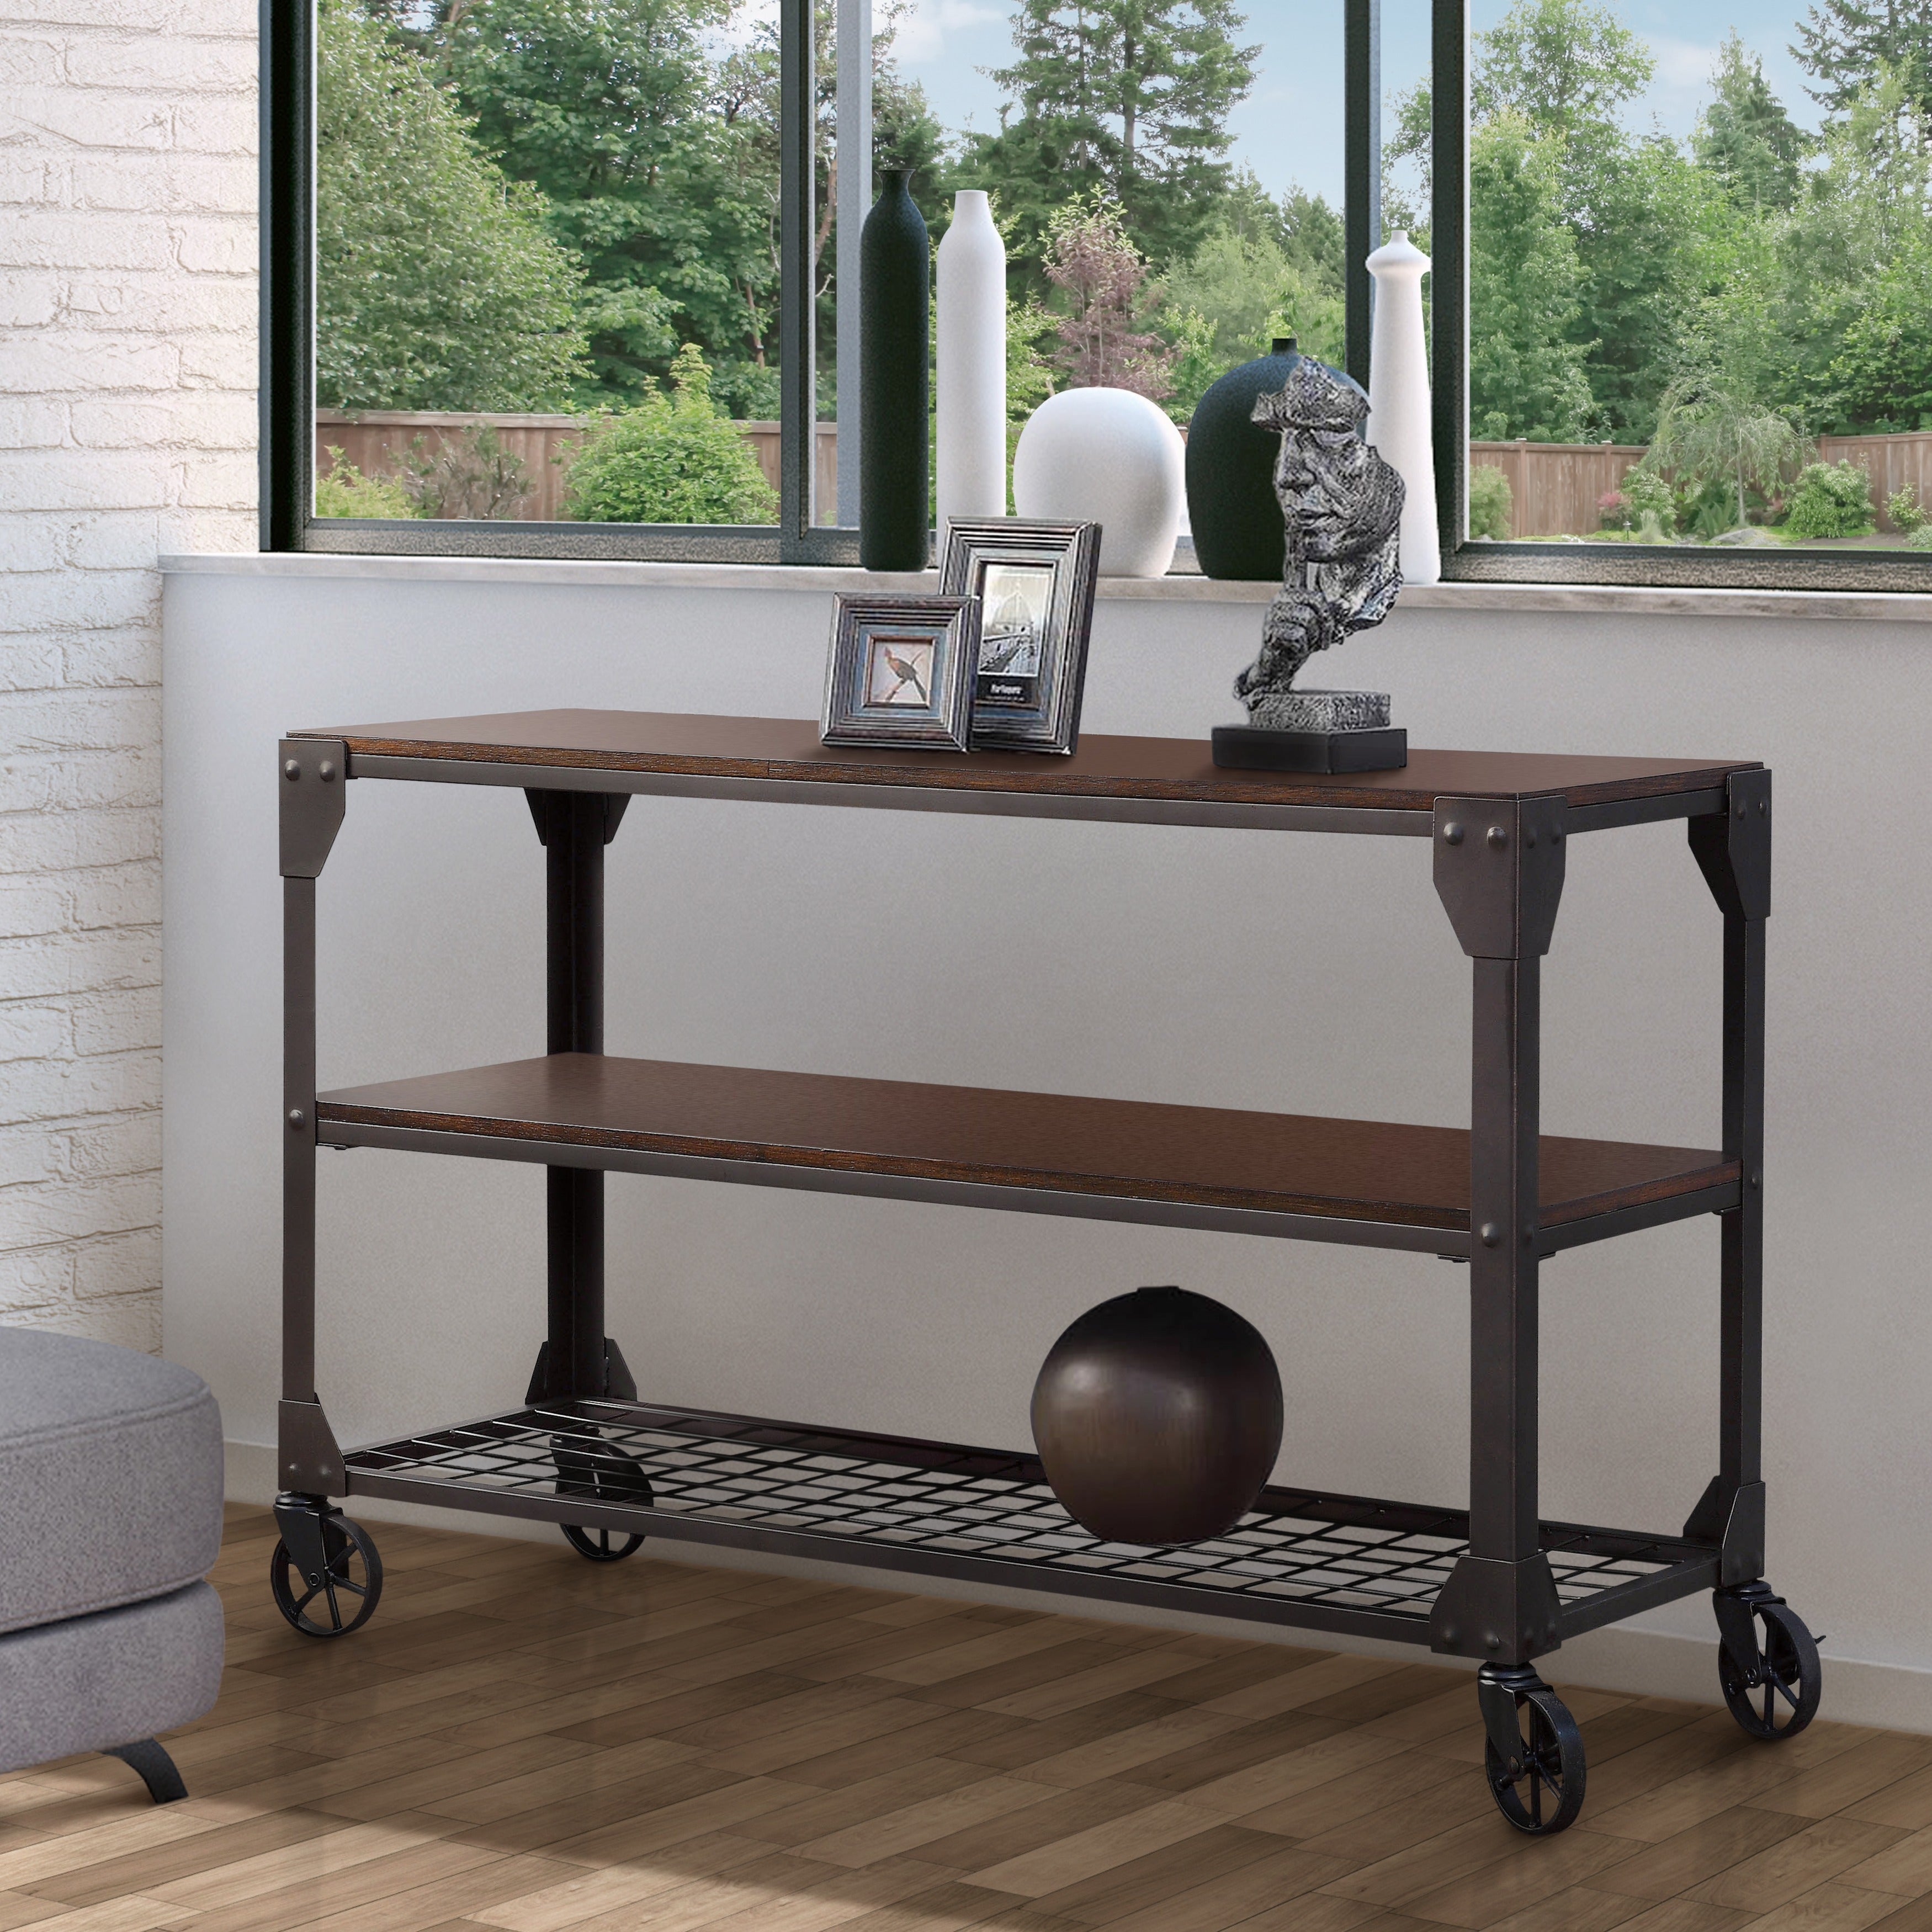 Bon Shop Furniture Of America Karina Oak Toned Wood And Metal Industrial Style  Sofa Table   On Sale   Free Shipping Today   Overstock.com   9913989